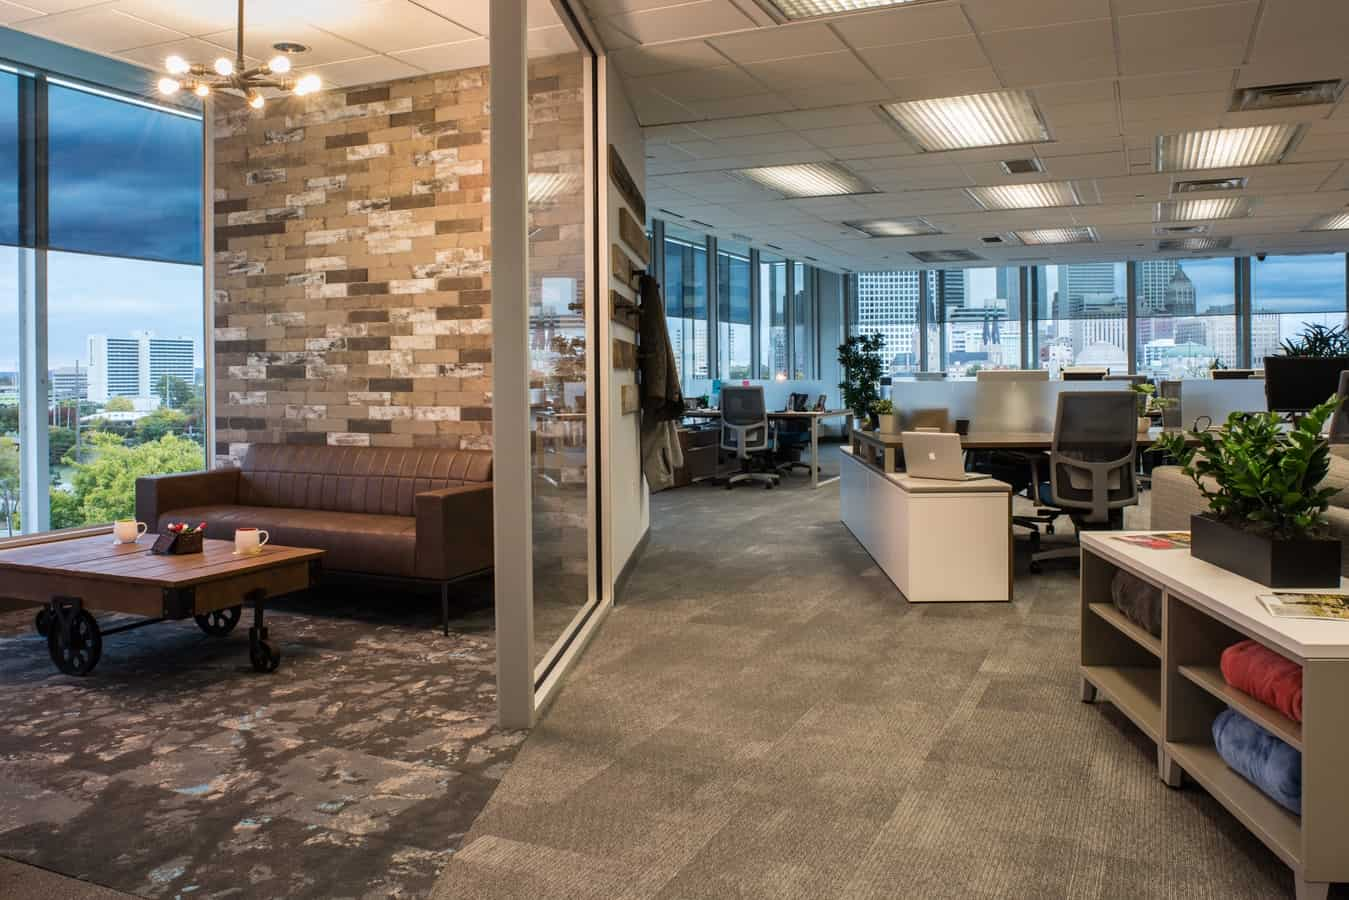 corporate offices l m office furniture rh l mofficefurn com corporate office furniture leeds corporate office furniture atlanta